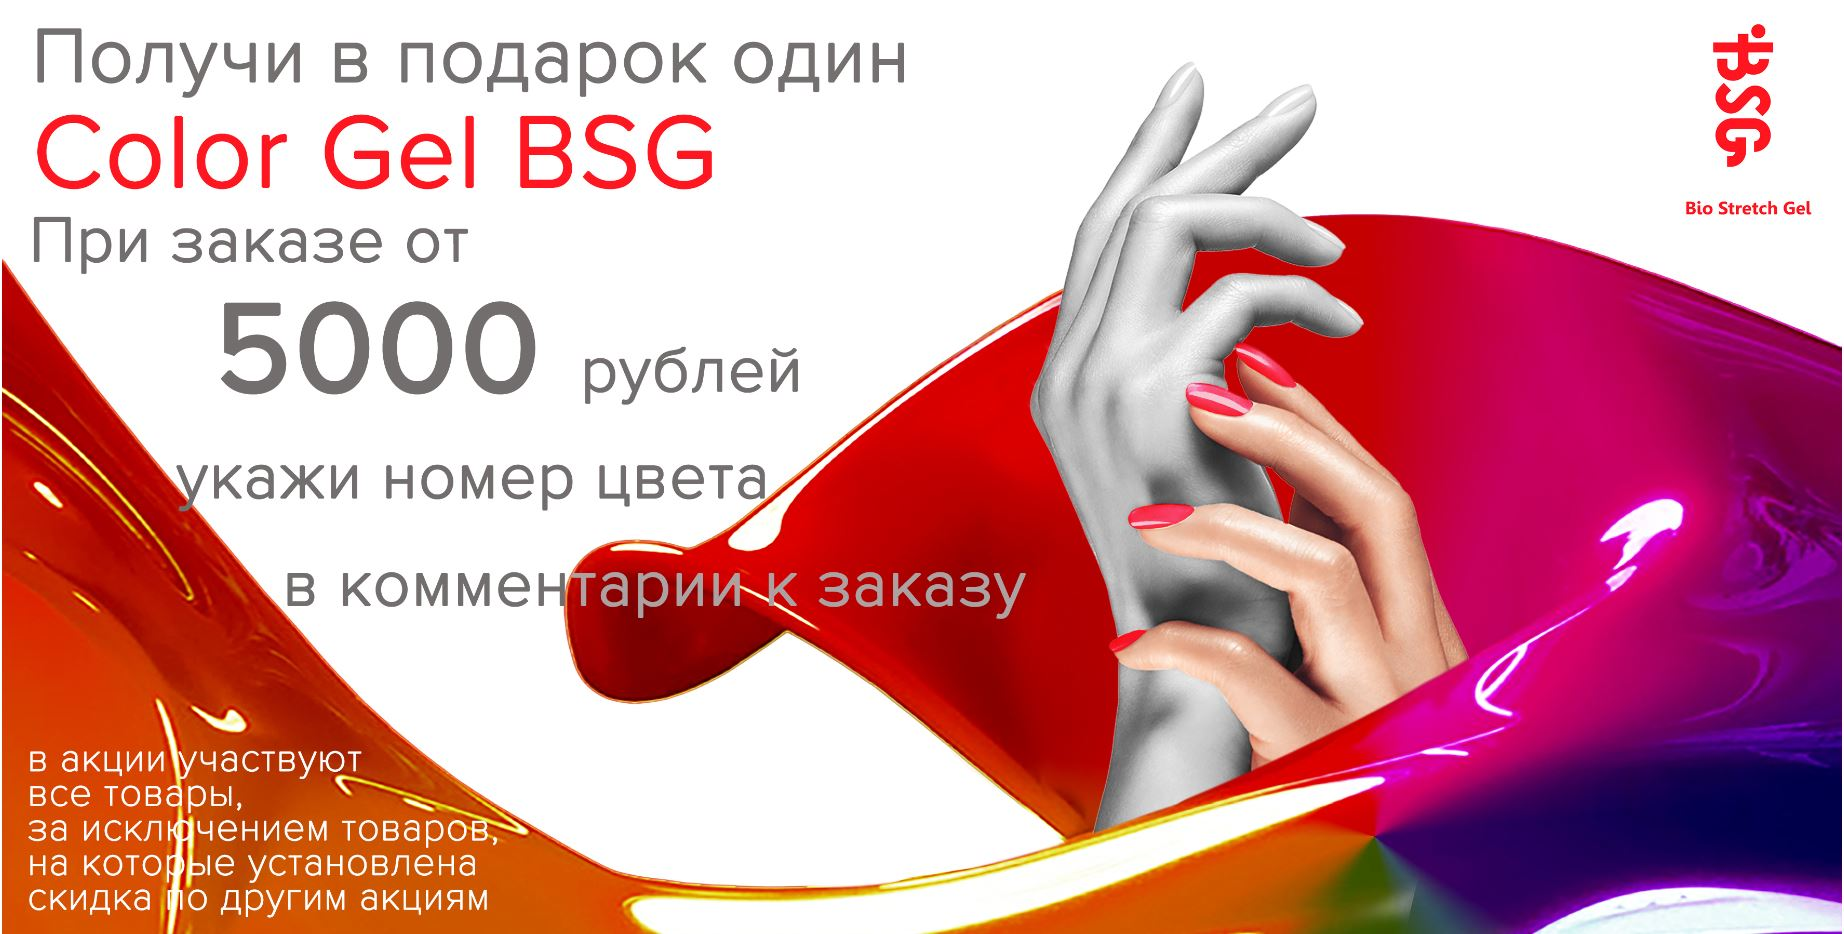 Акция_5000_плюс_Color_Gel_3.jpg